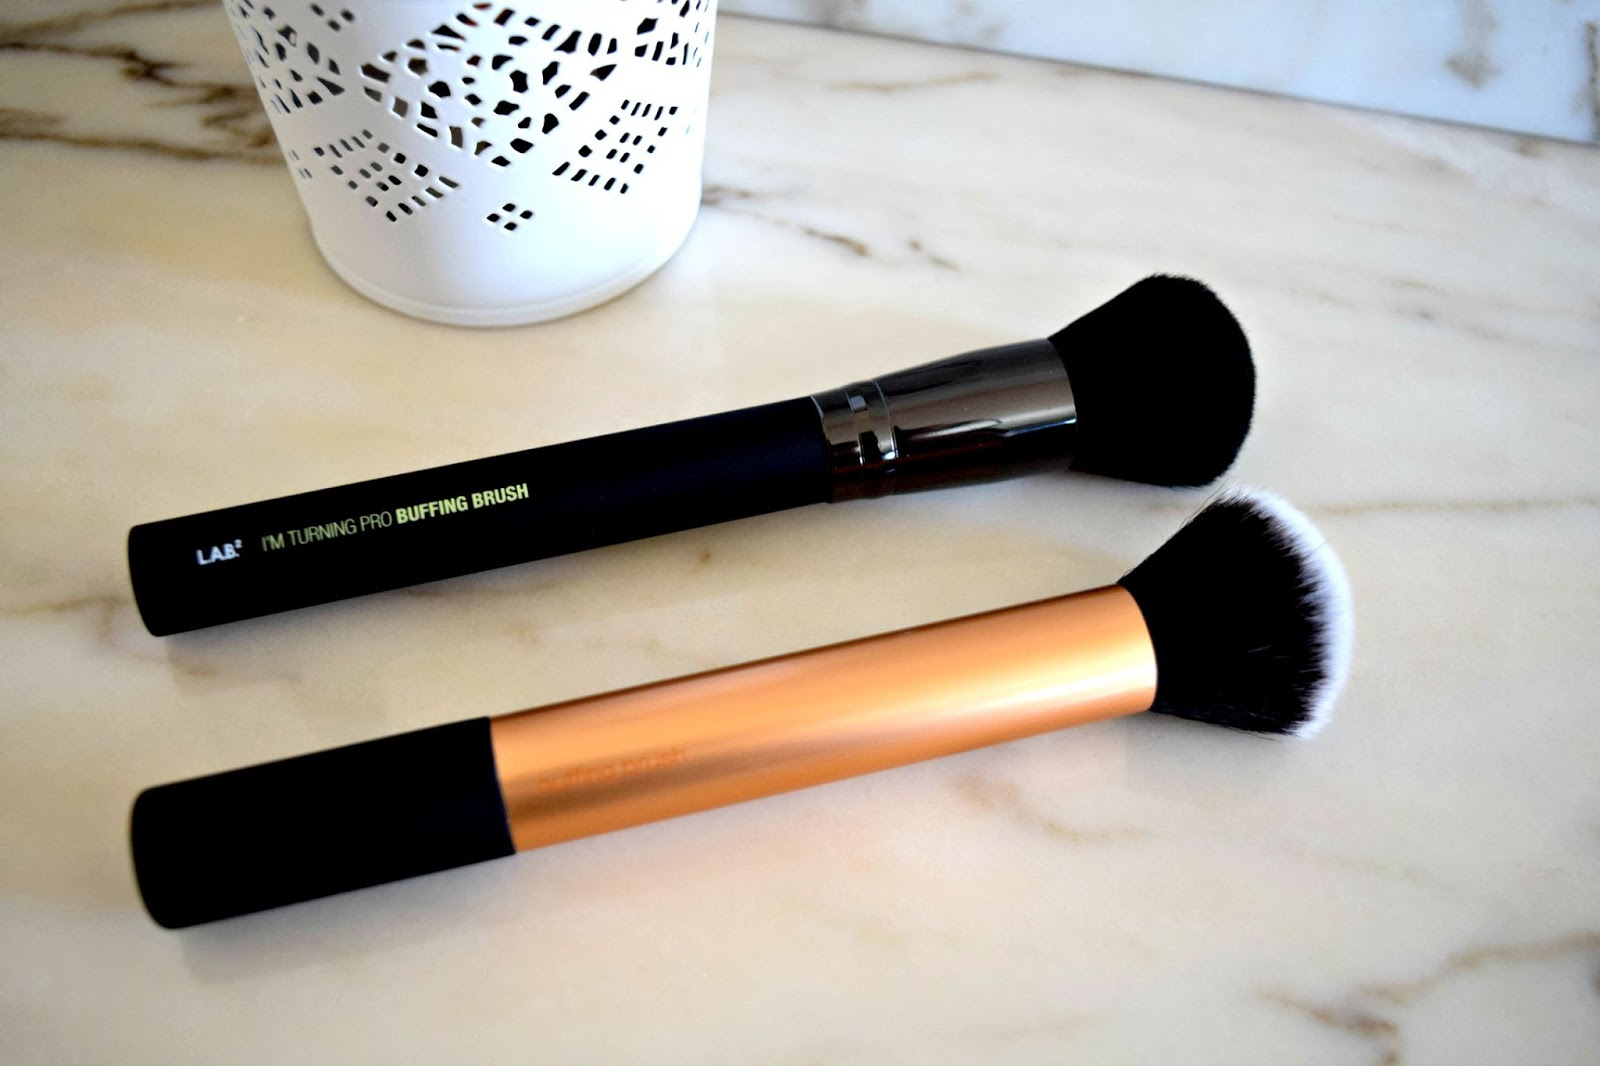 Buffing Brush LAB 2 beauty